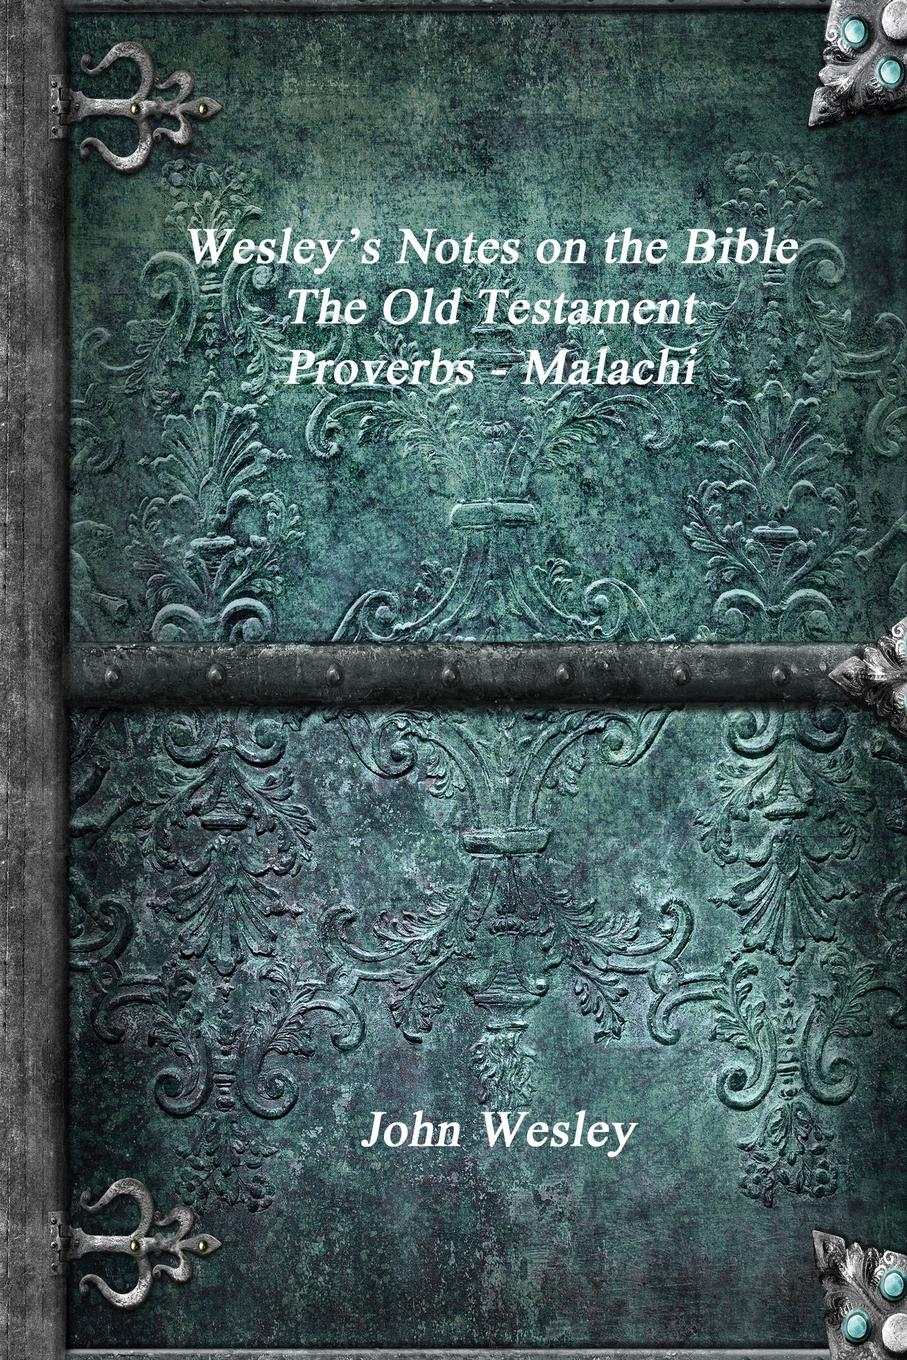 Wesley.s Notes on the Bible - The Old Testament. Proverbs - Malachi